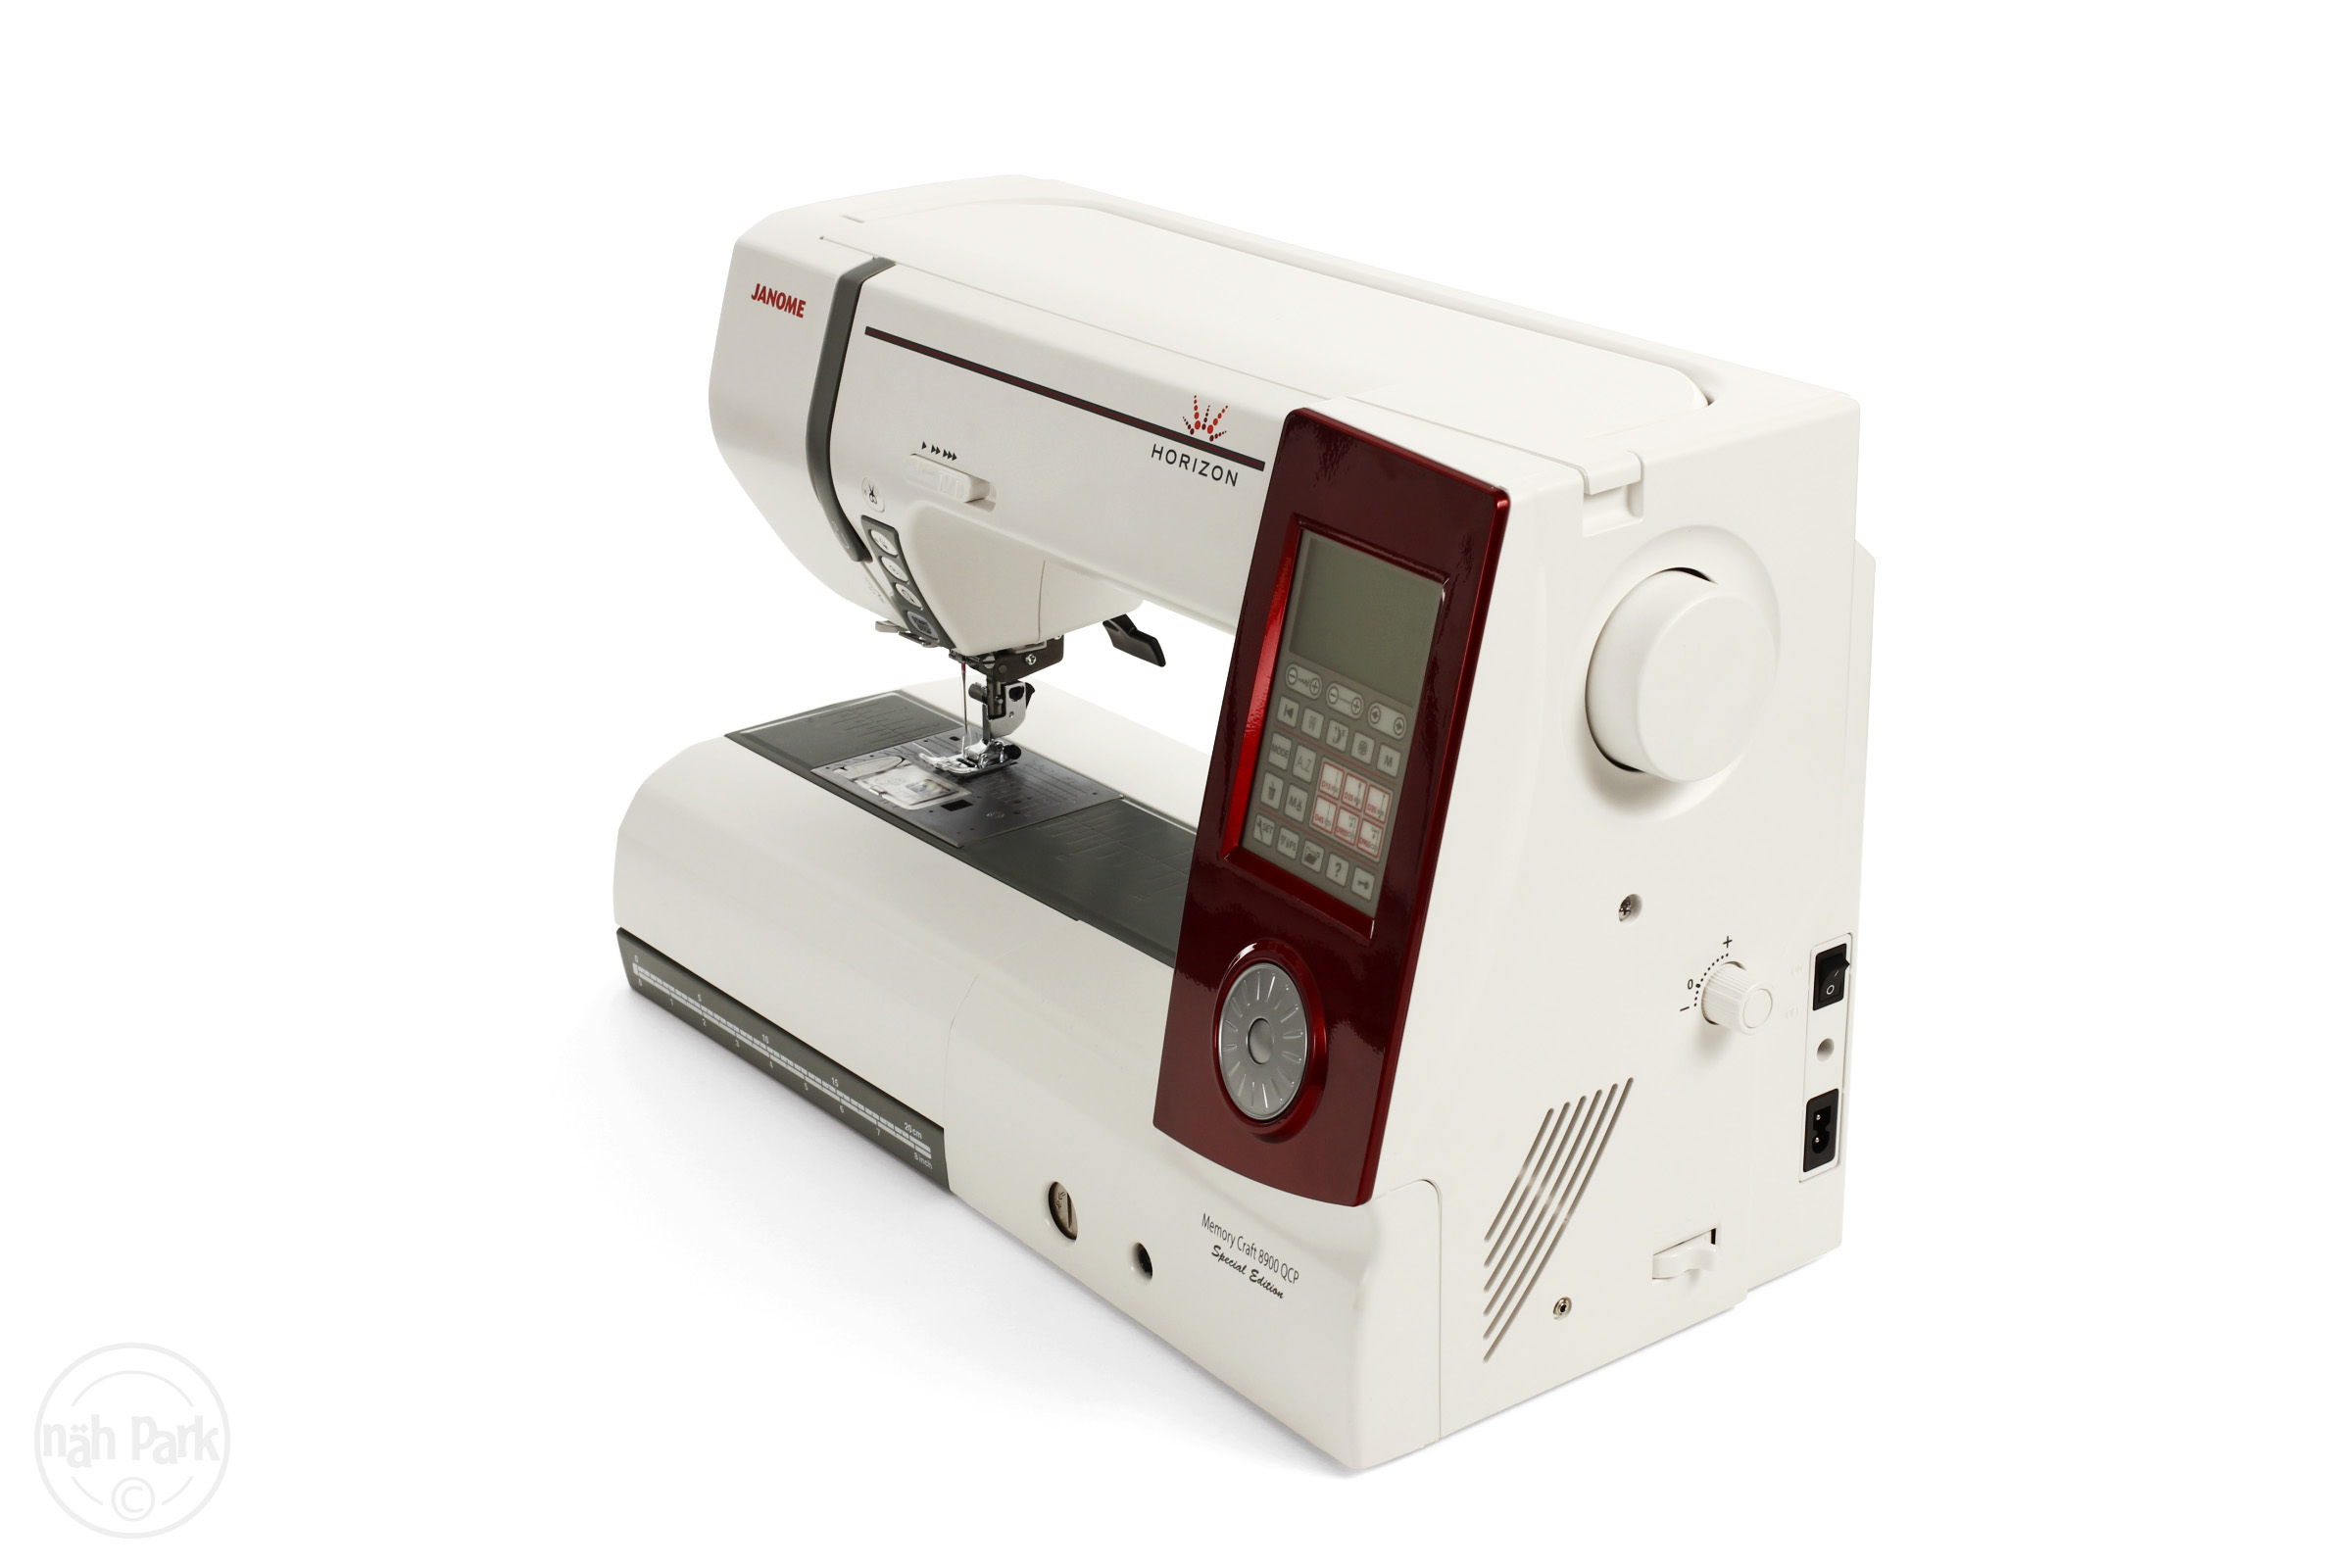 Janome memory craft 8900 - Janome Memory Craft 8900 Qcp Red Edition N Hmaschine